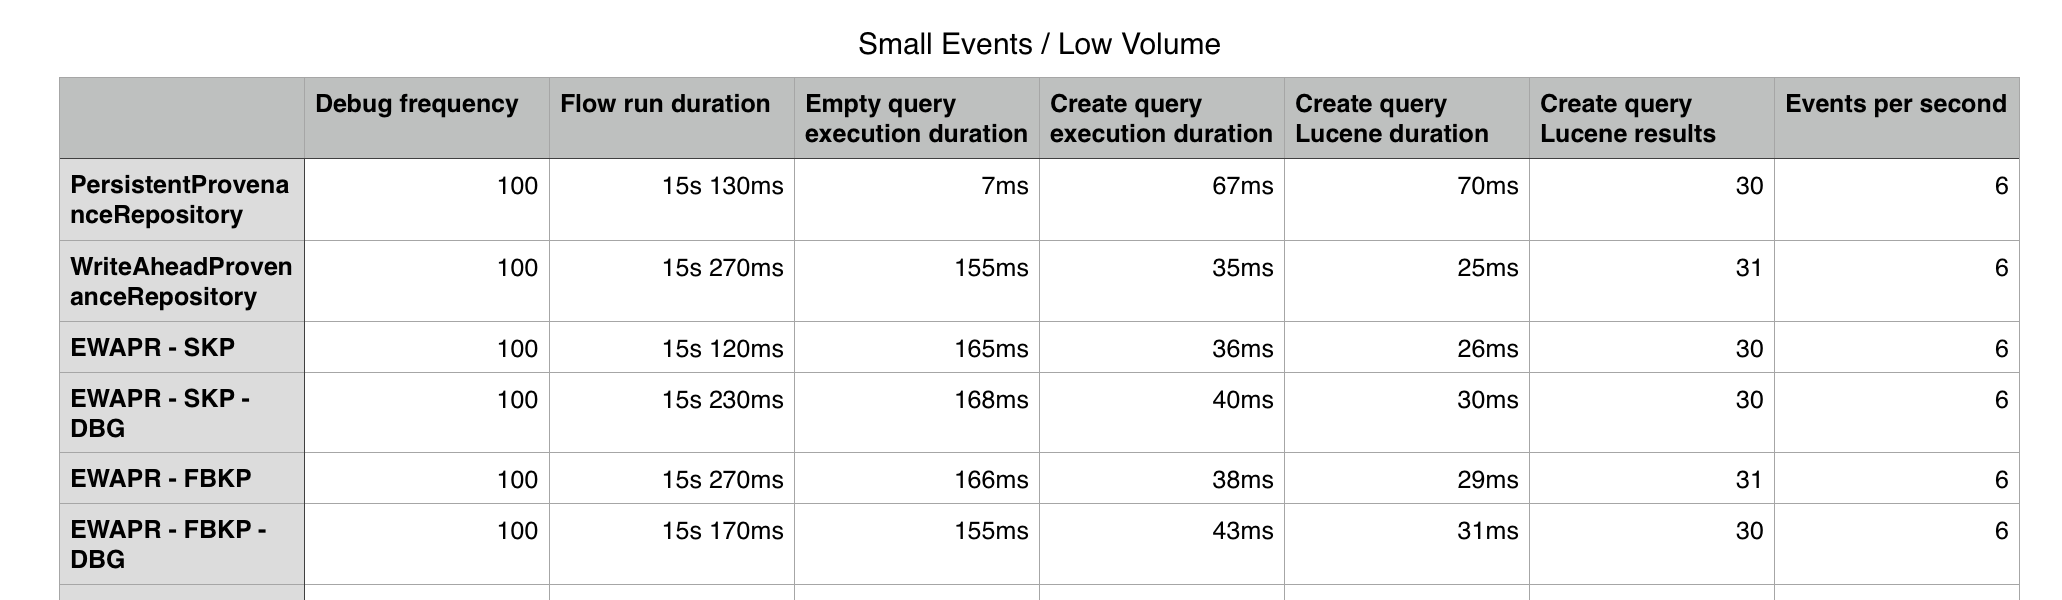 Small Event Low Volume benchmarks